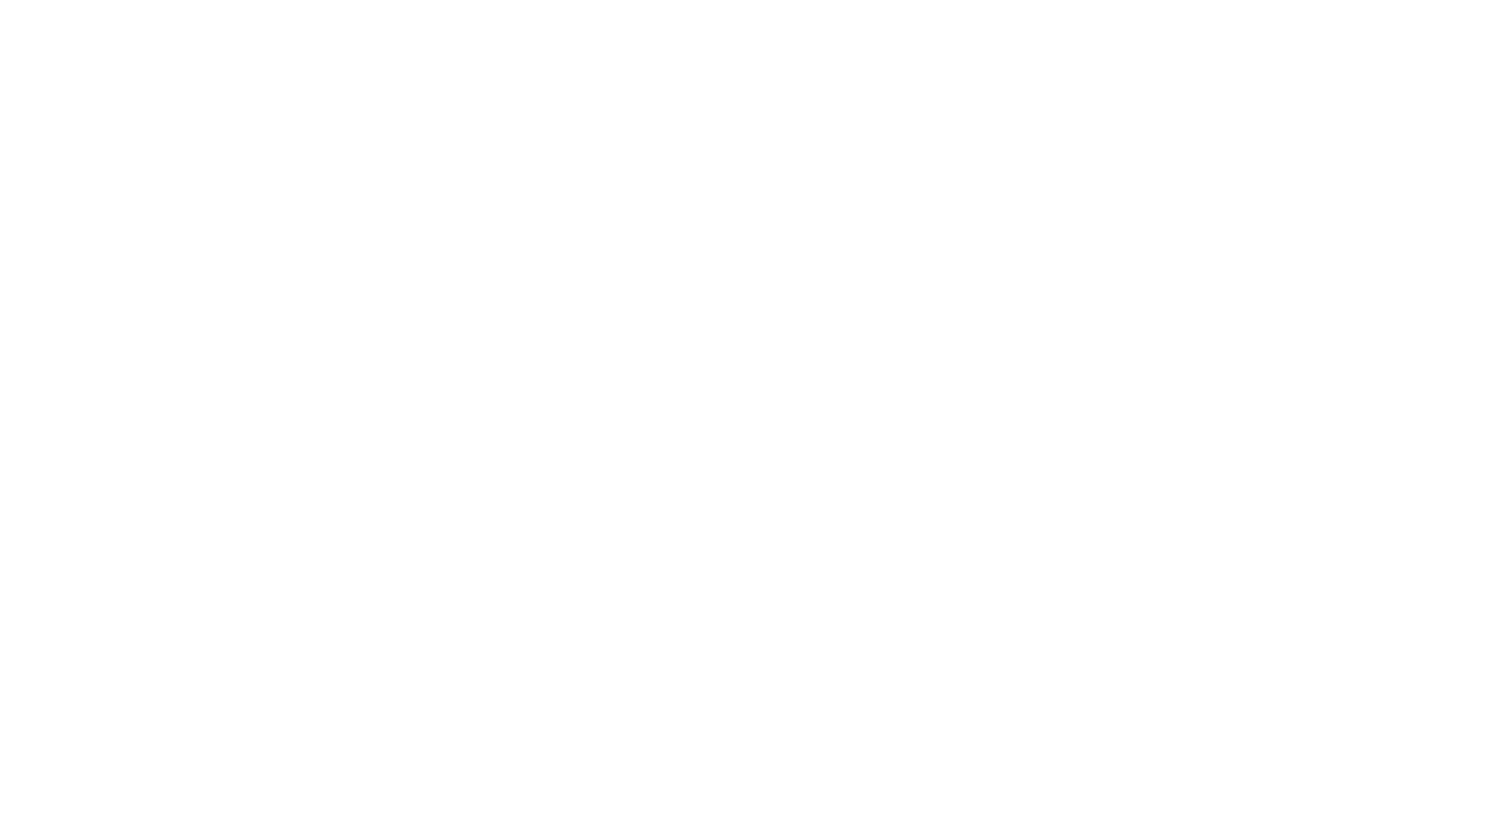 House of Cambridge